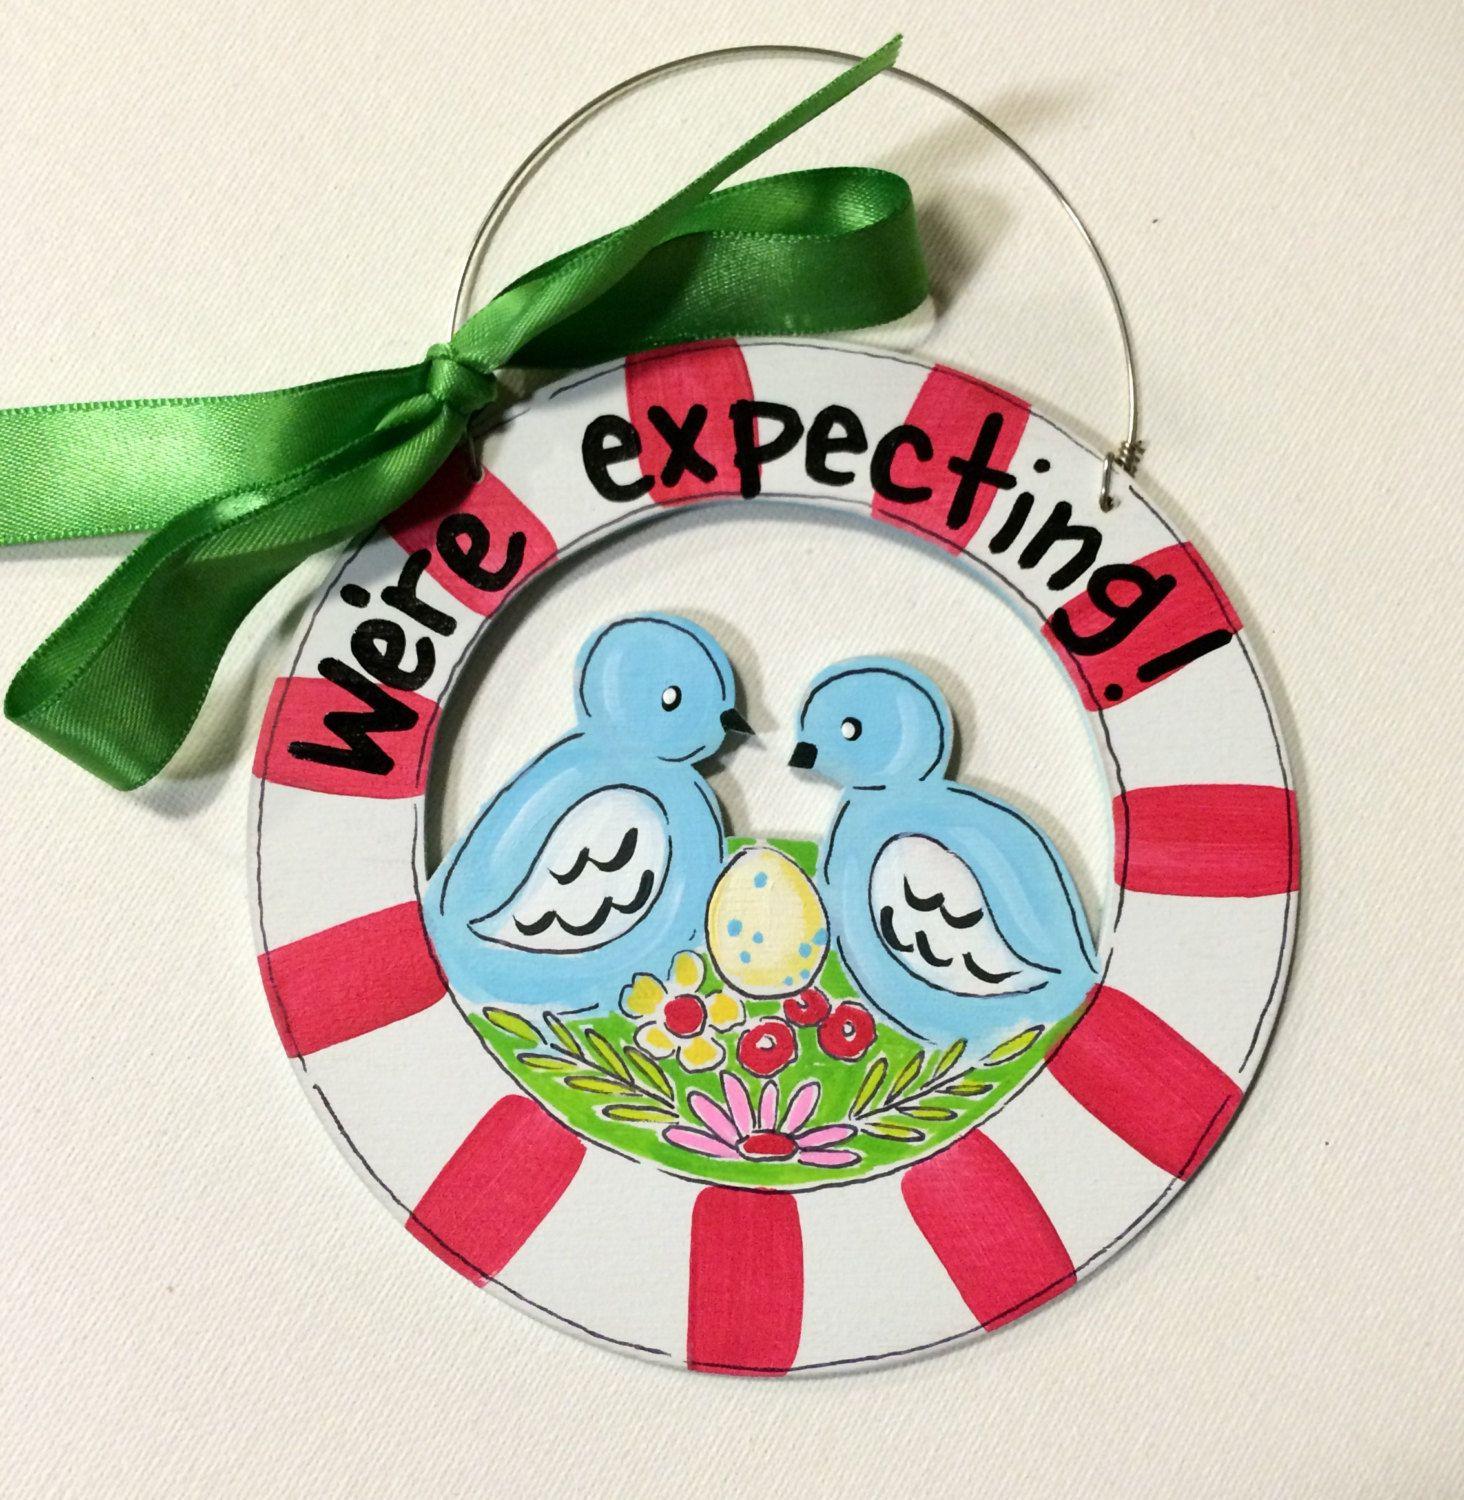 Birdnest Expecting Ornament - pregnancy ornament- bird ornament - expecting Christmas ornament- personalized- painted wood - red stripes by HazelMartinDesigns on Etsy